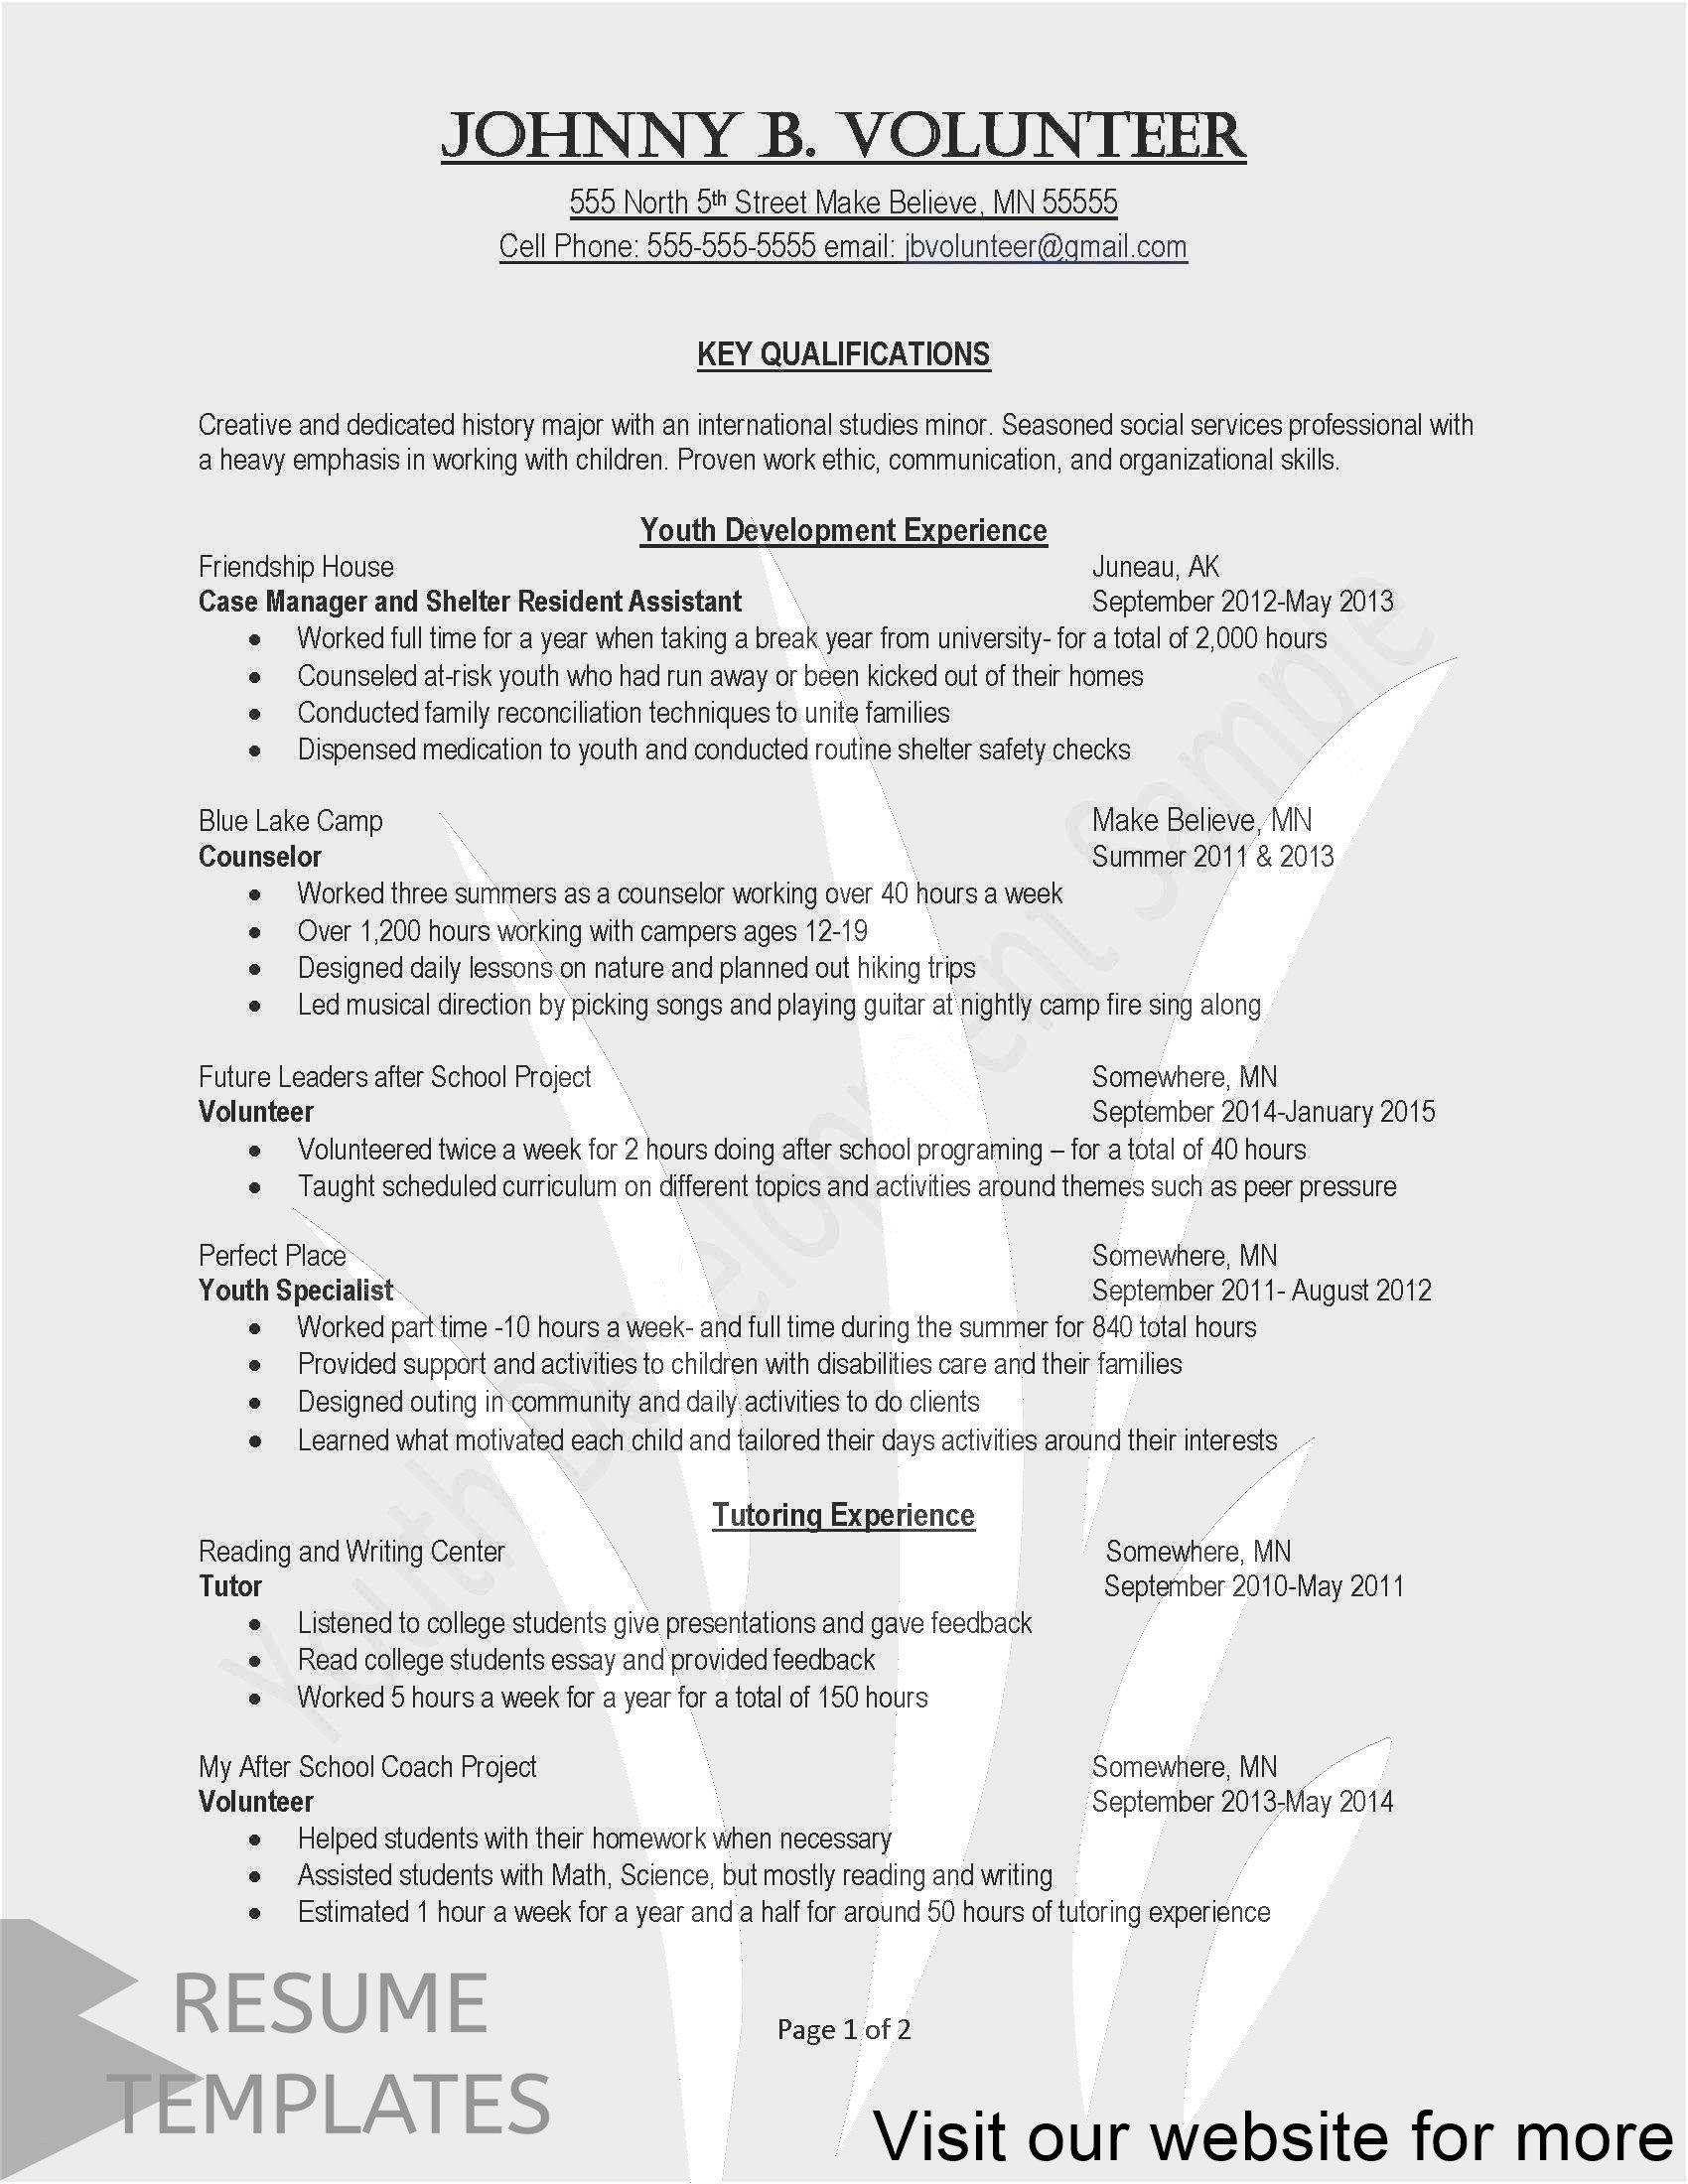 resume template editable Professional in 2020 Resume